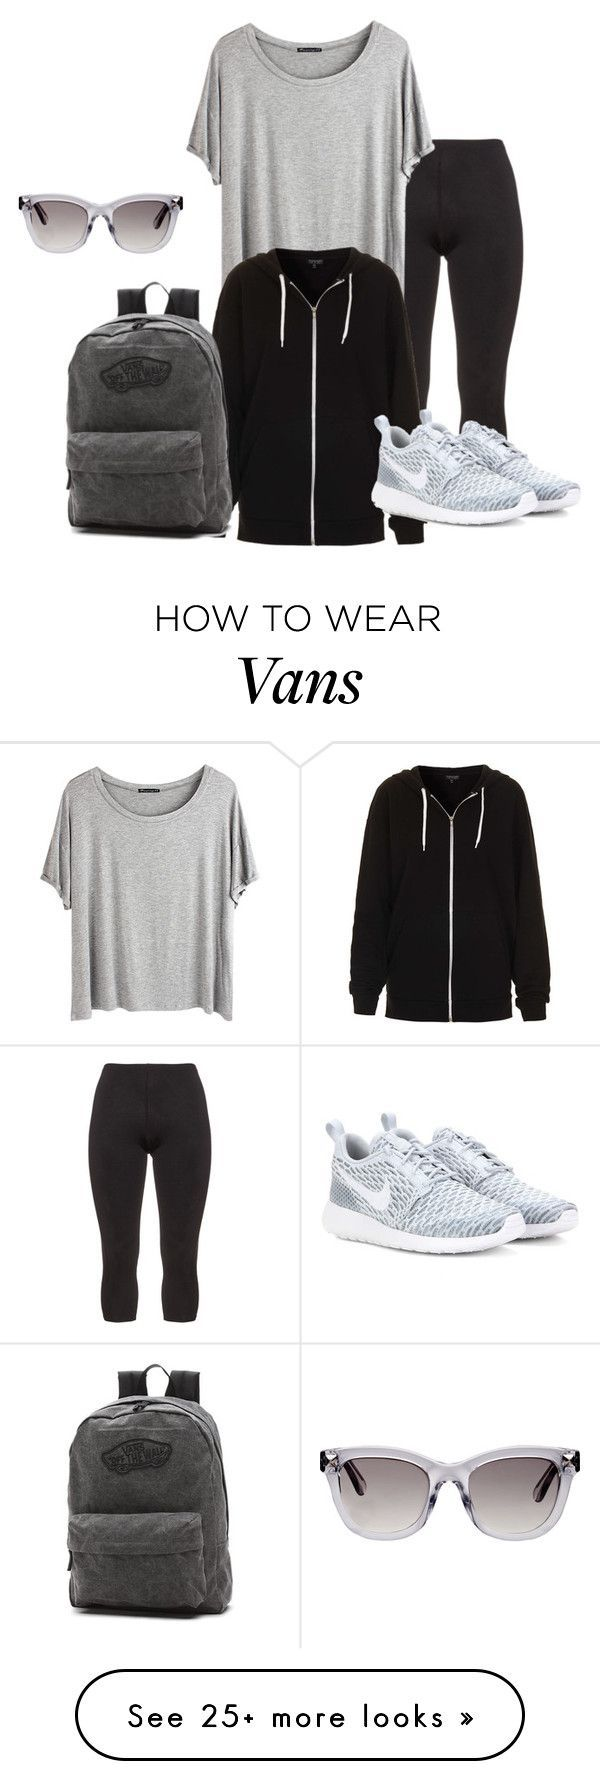 """""""M"""" by butnotperfect on Polyvore featuring Manon Baptiste, Chicnova Fashion, Valentino, Topshop, Vans and NIKE"""